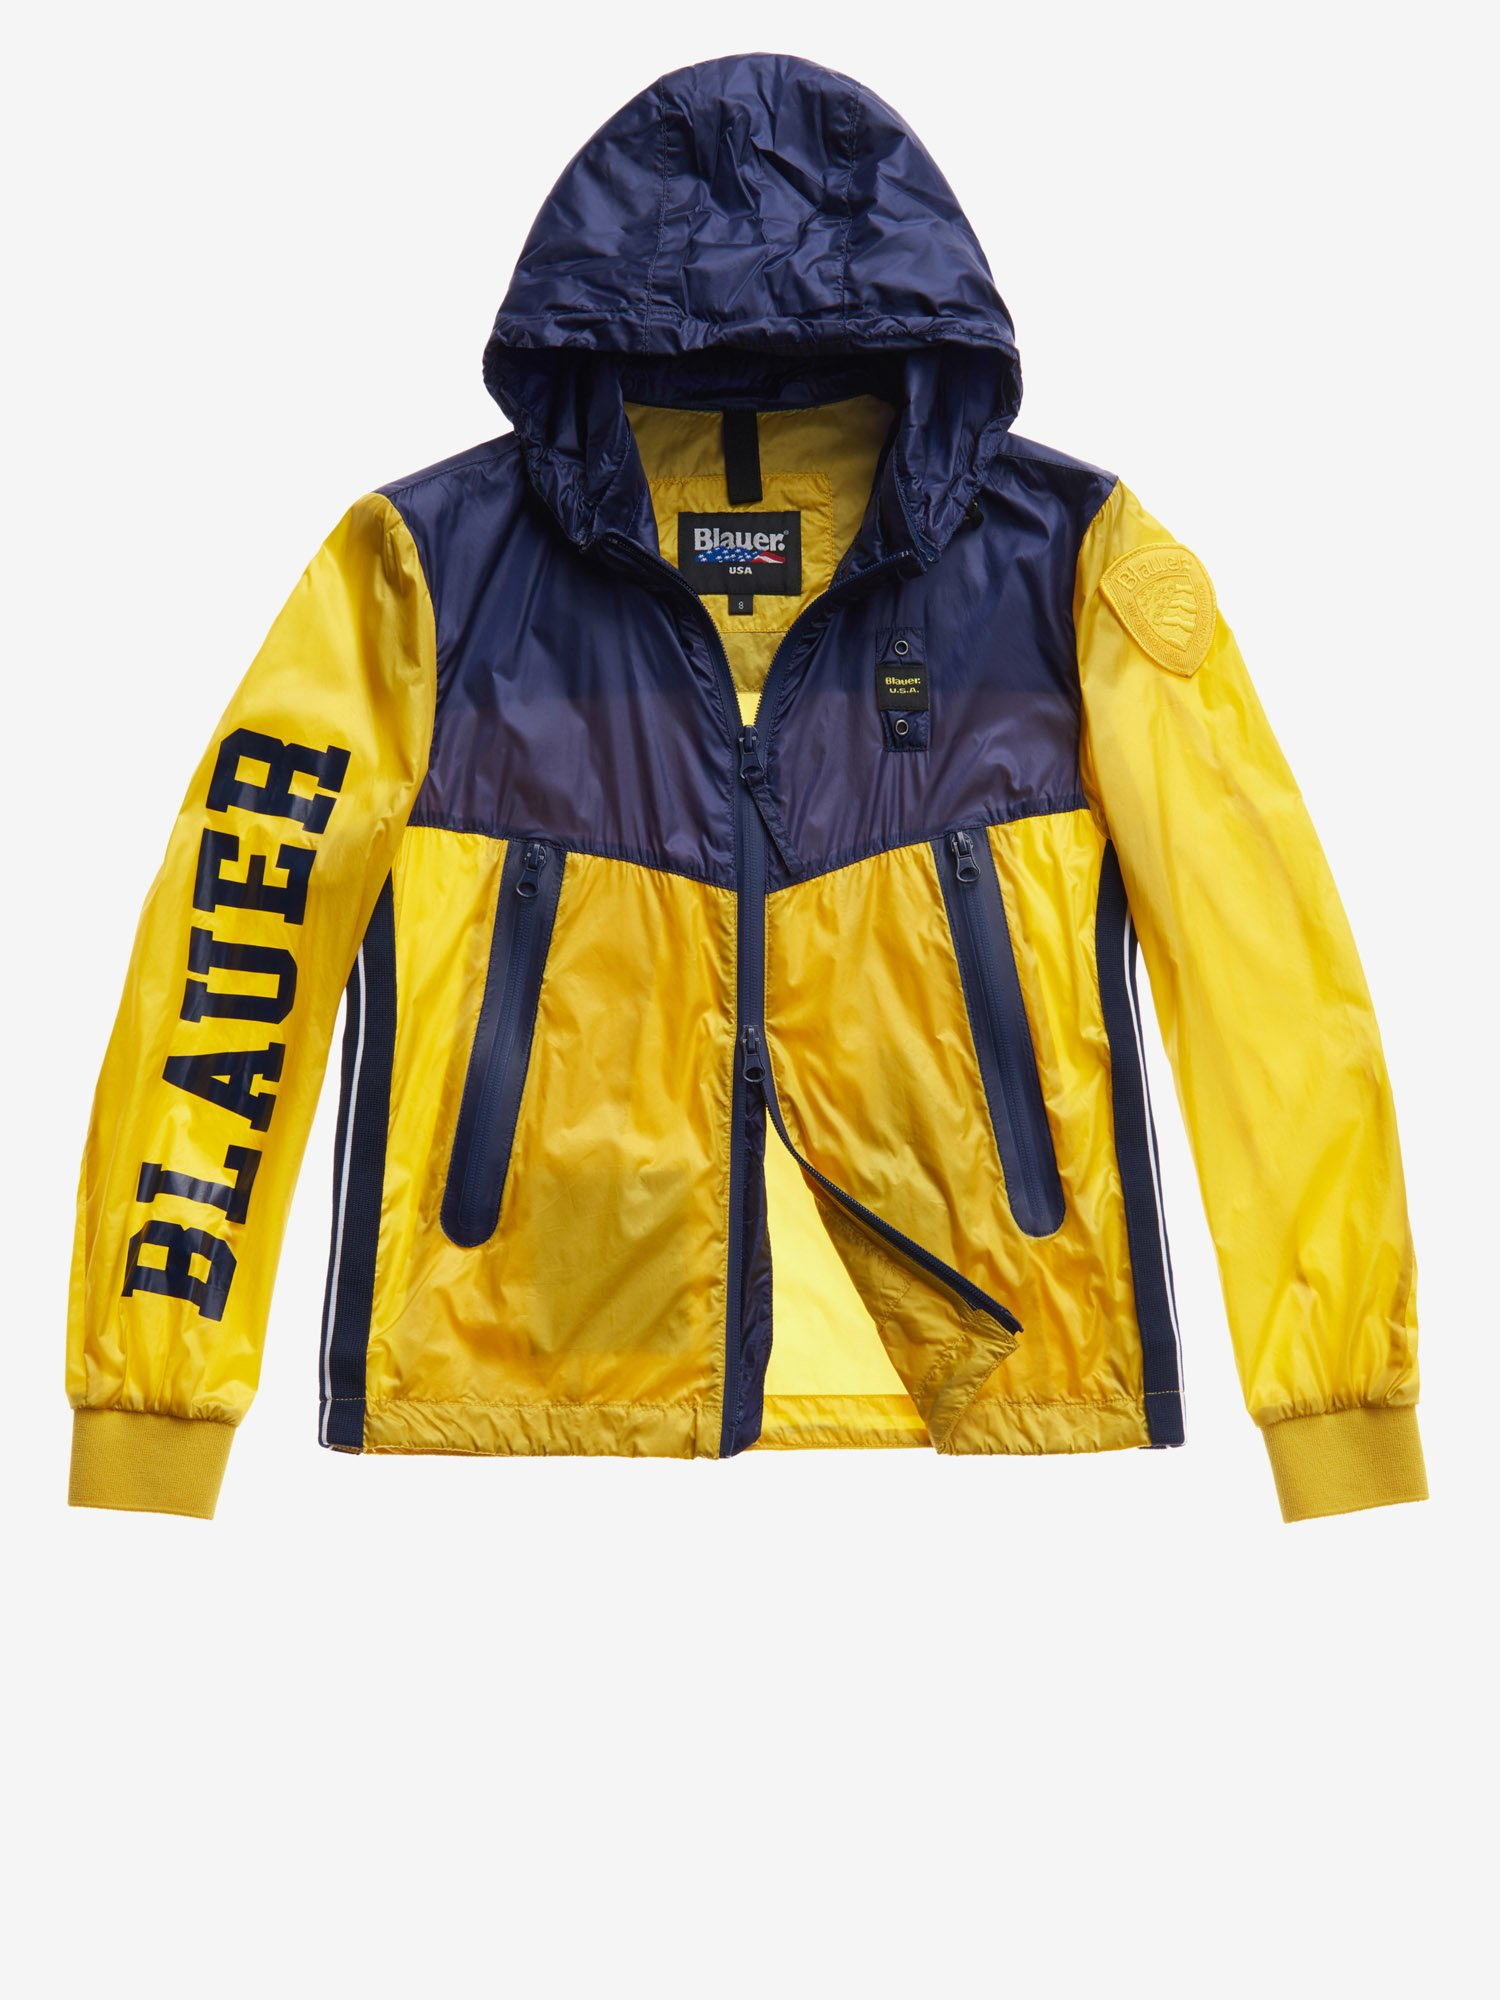 Blauer - TRANSPARENT TWO-TONE NYLON JACKET - Canary - Blauer